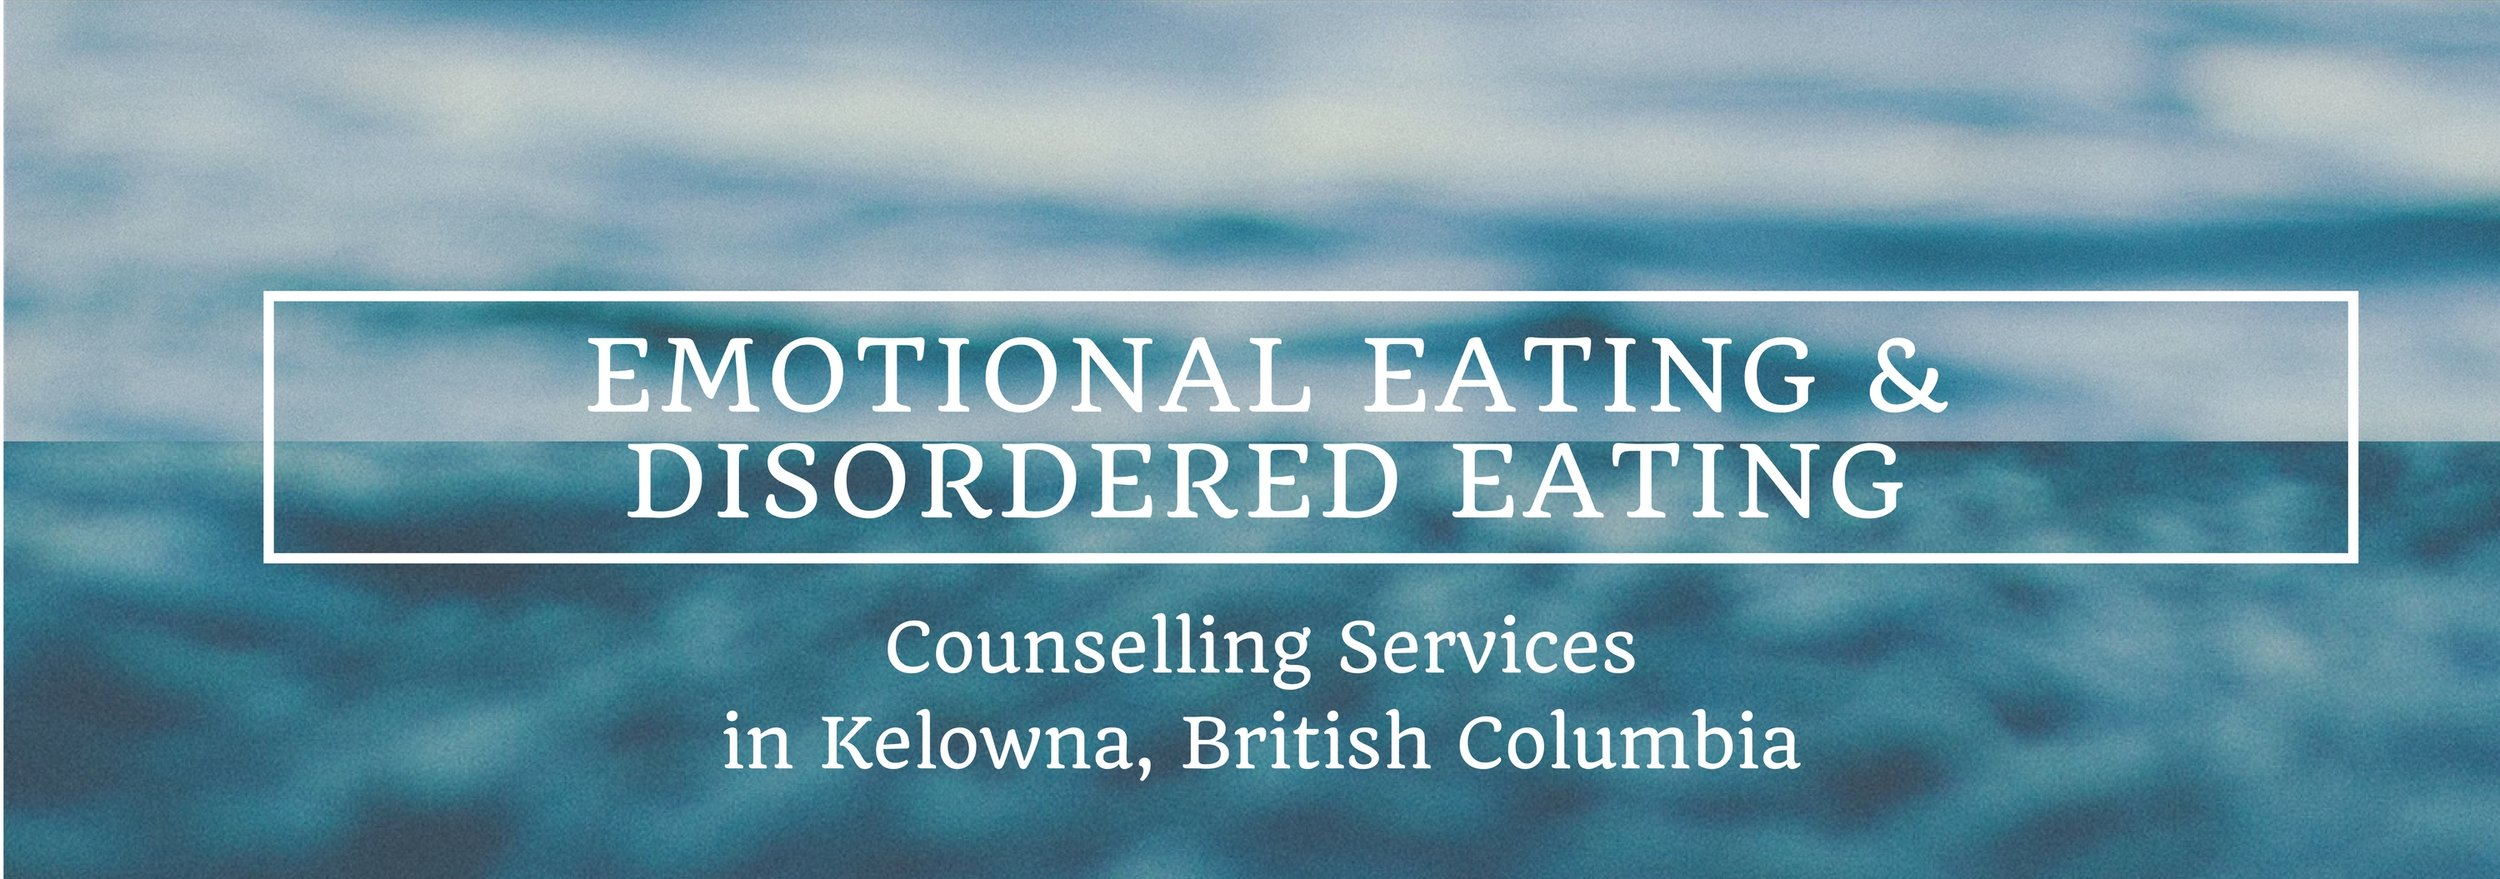 Kelowna Counselling Emotional Eating, Binge Eating, Disordered Eating